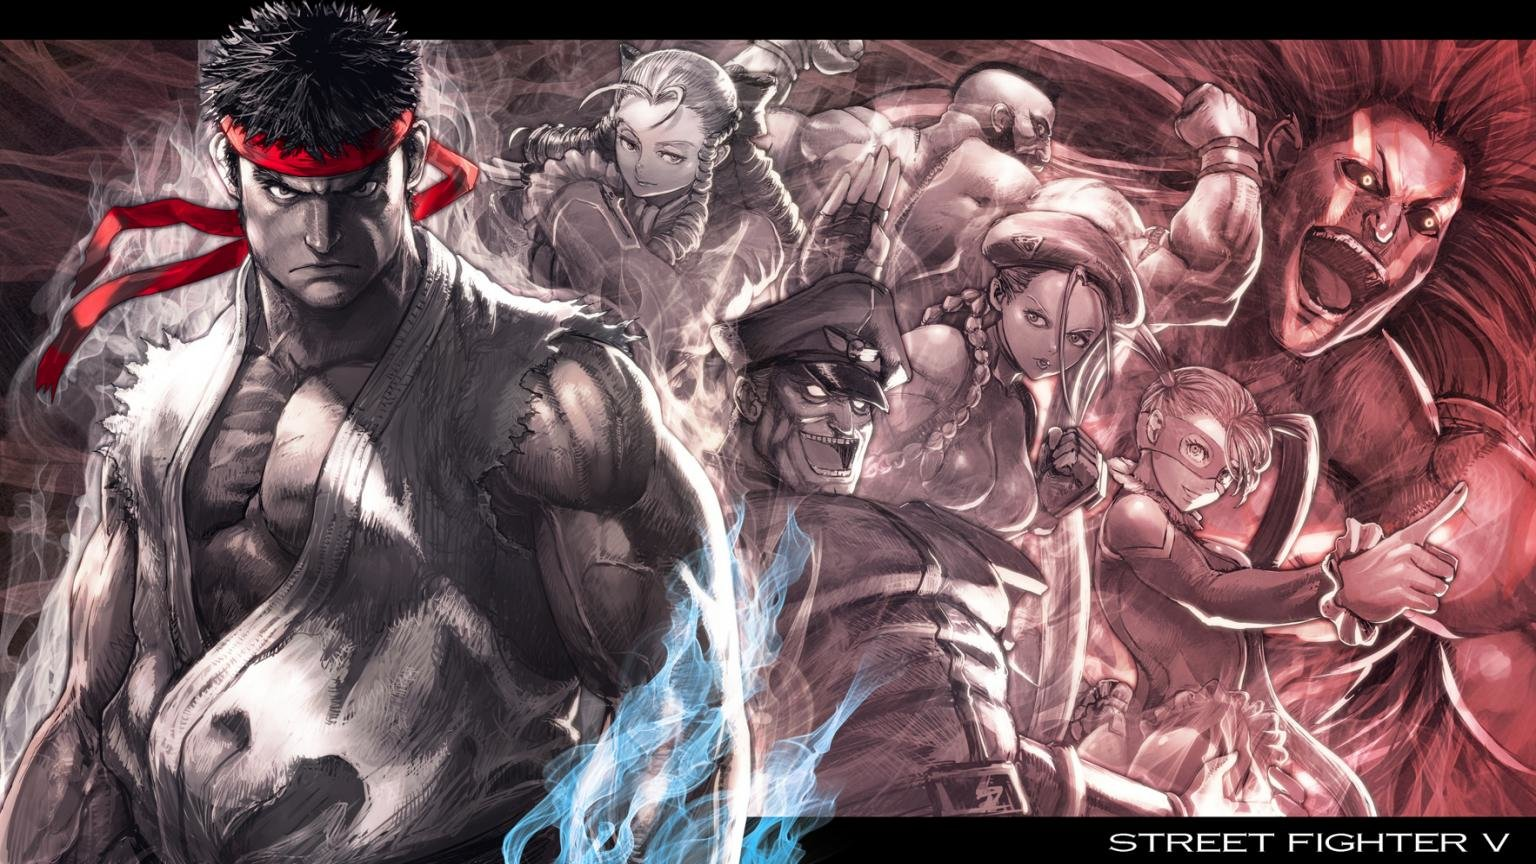 Download Hd 1536x864 Street Fighter 5 Pc Wallpaper Id 470048 For Free